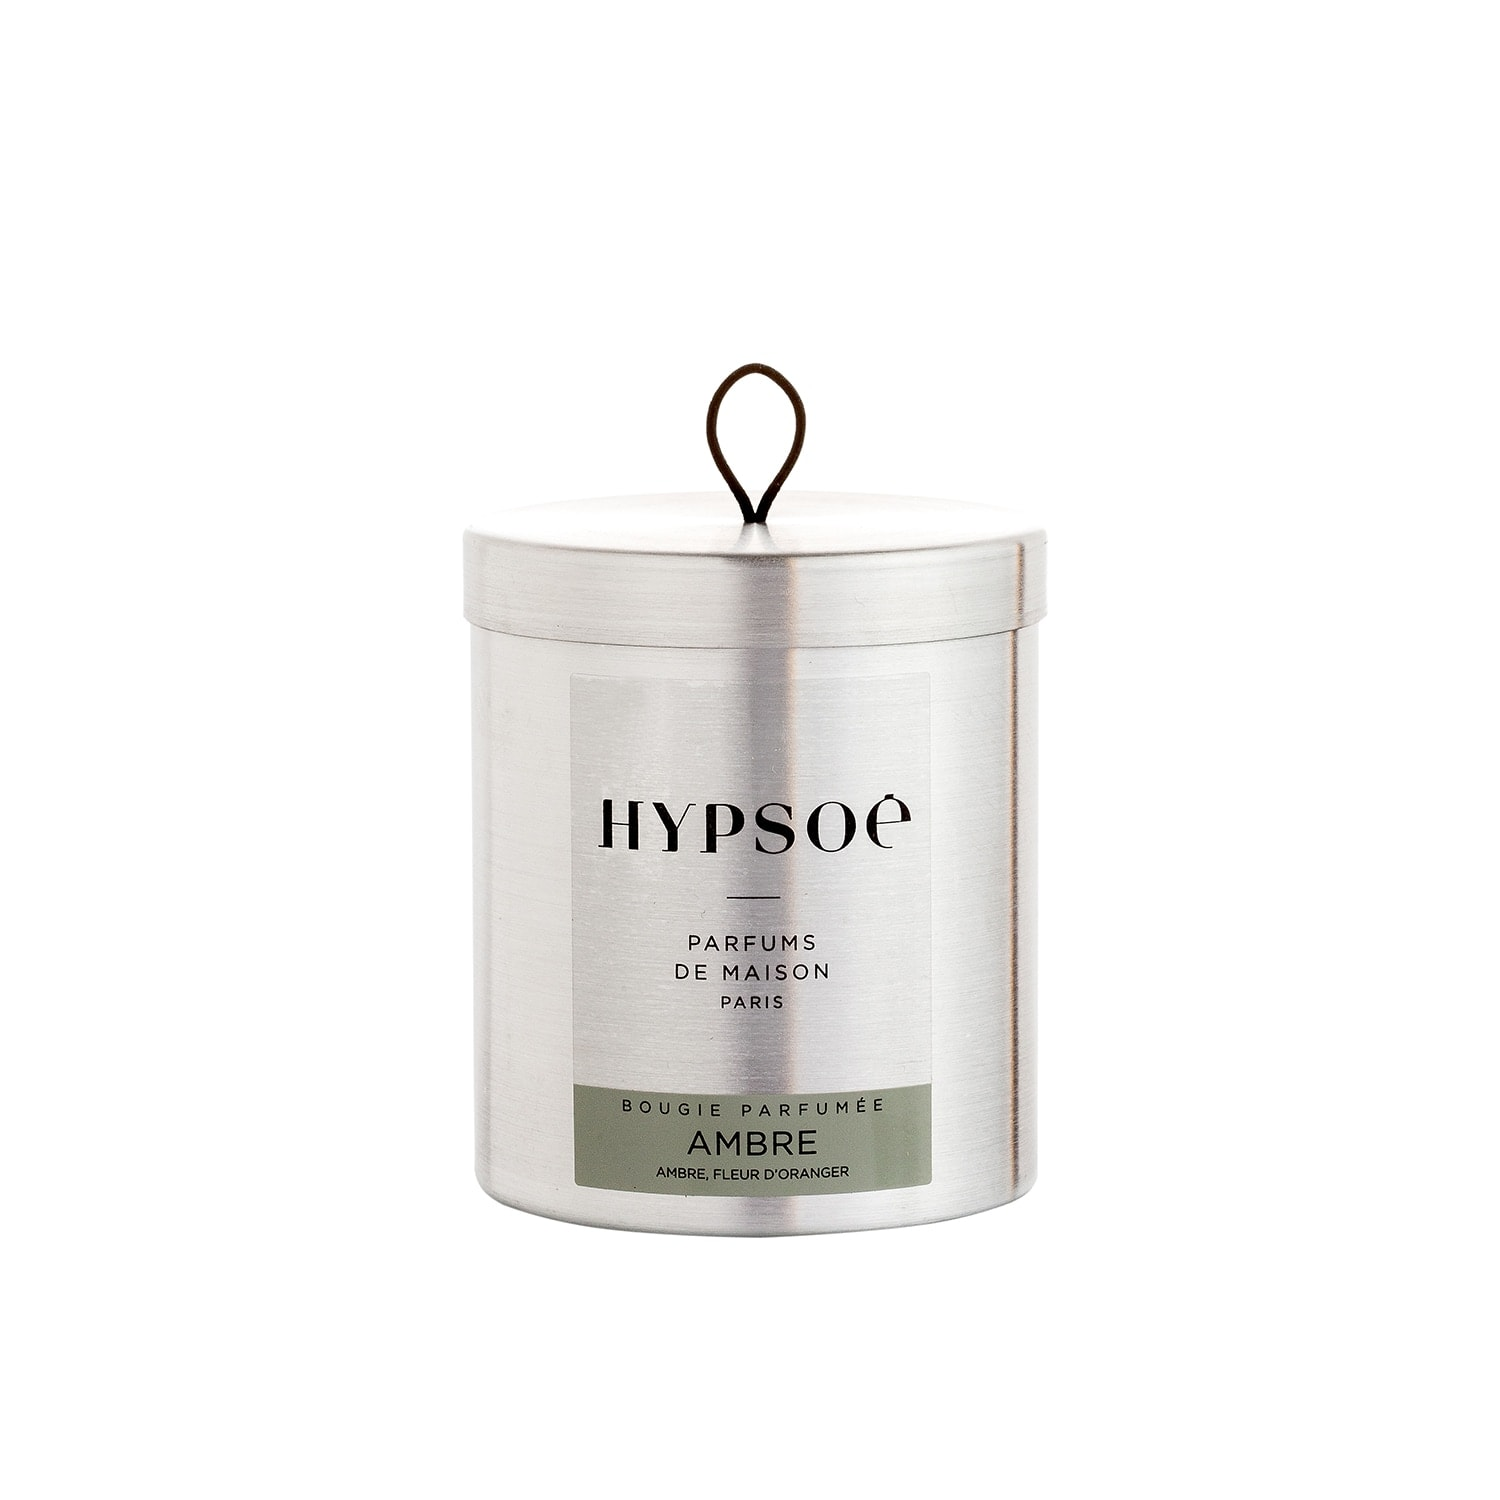 Hypsoe Scented Candle in Metal Tin - Ambre